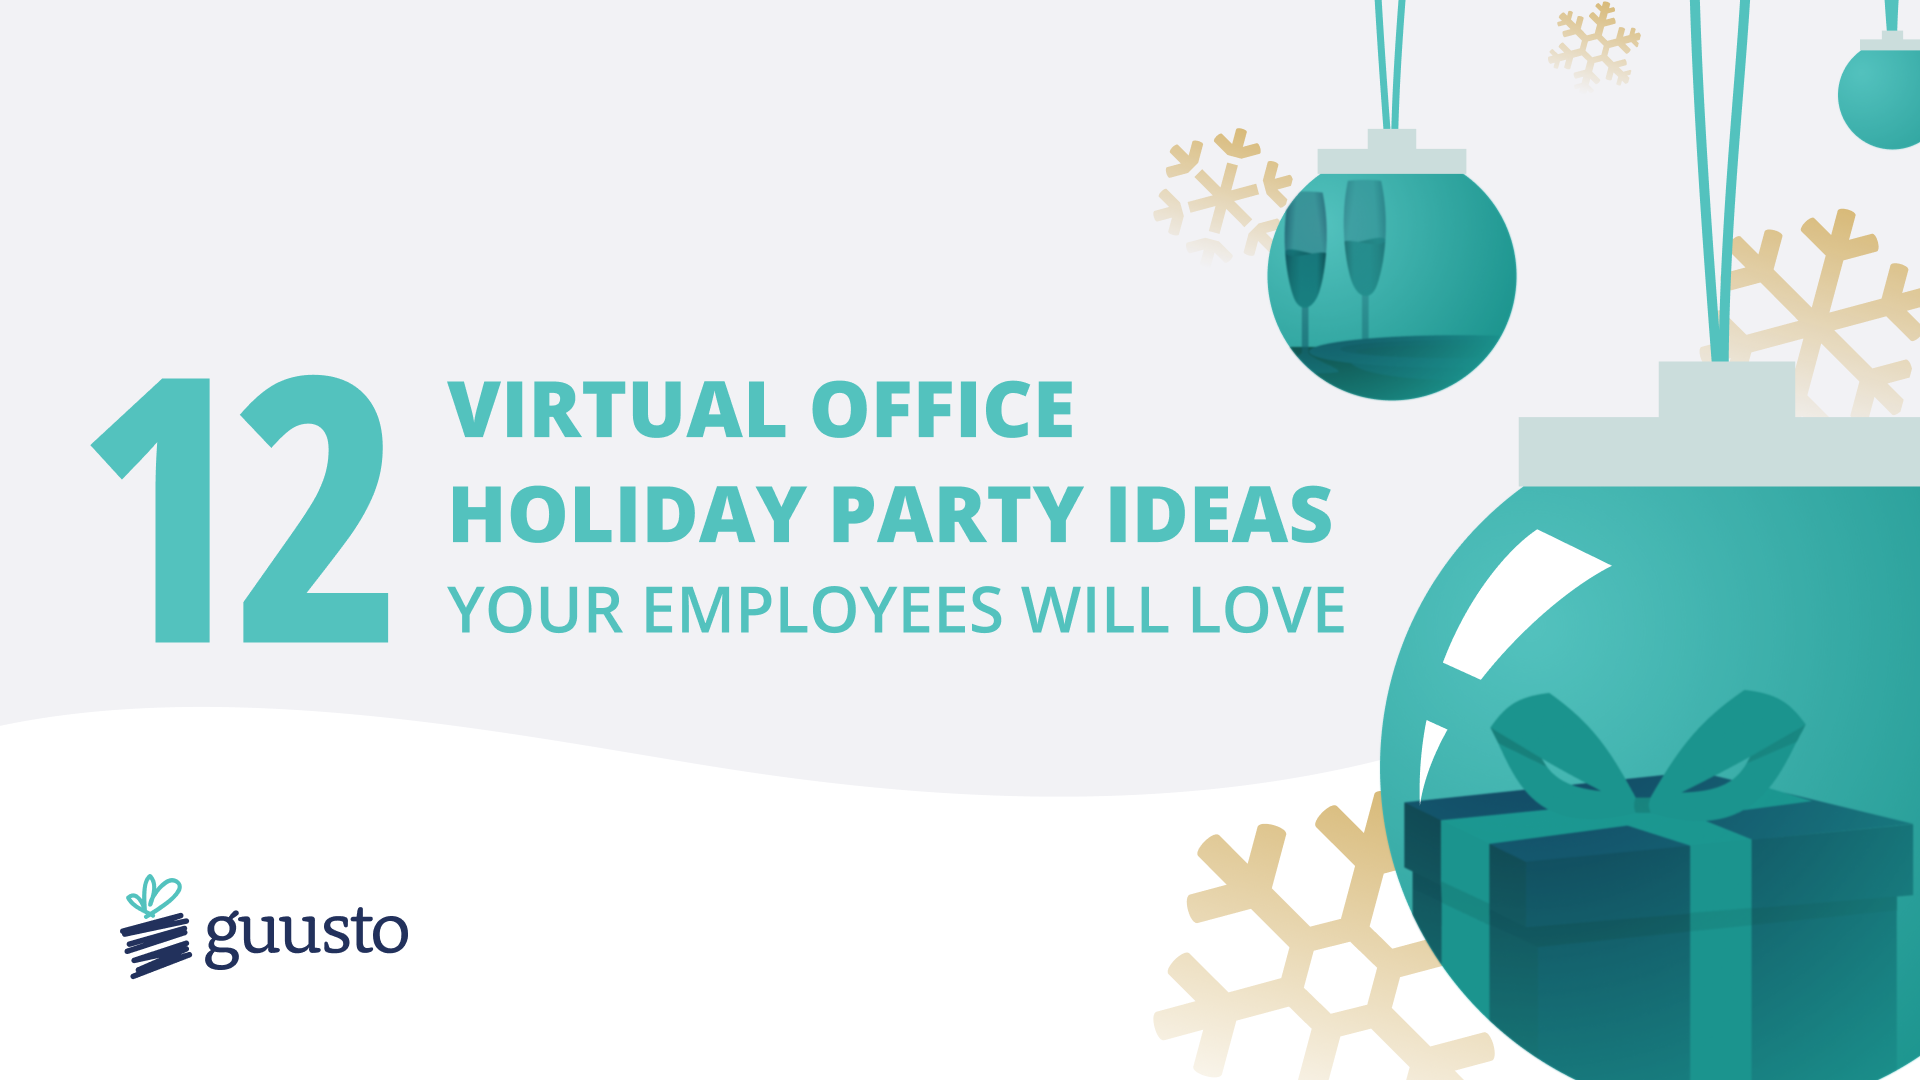 12 Virtual Office Holiday Party Ideas Your Employees Will Love